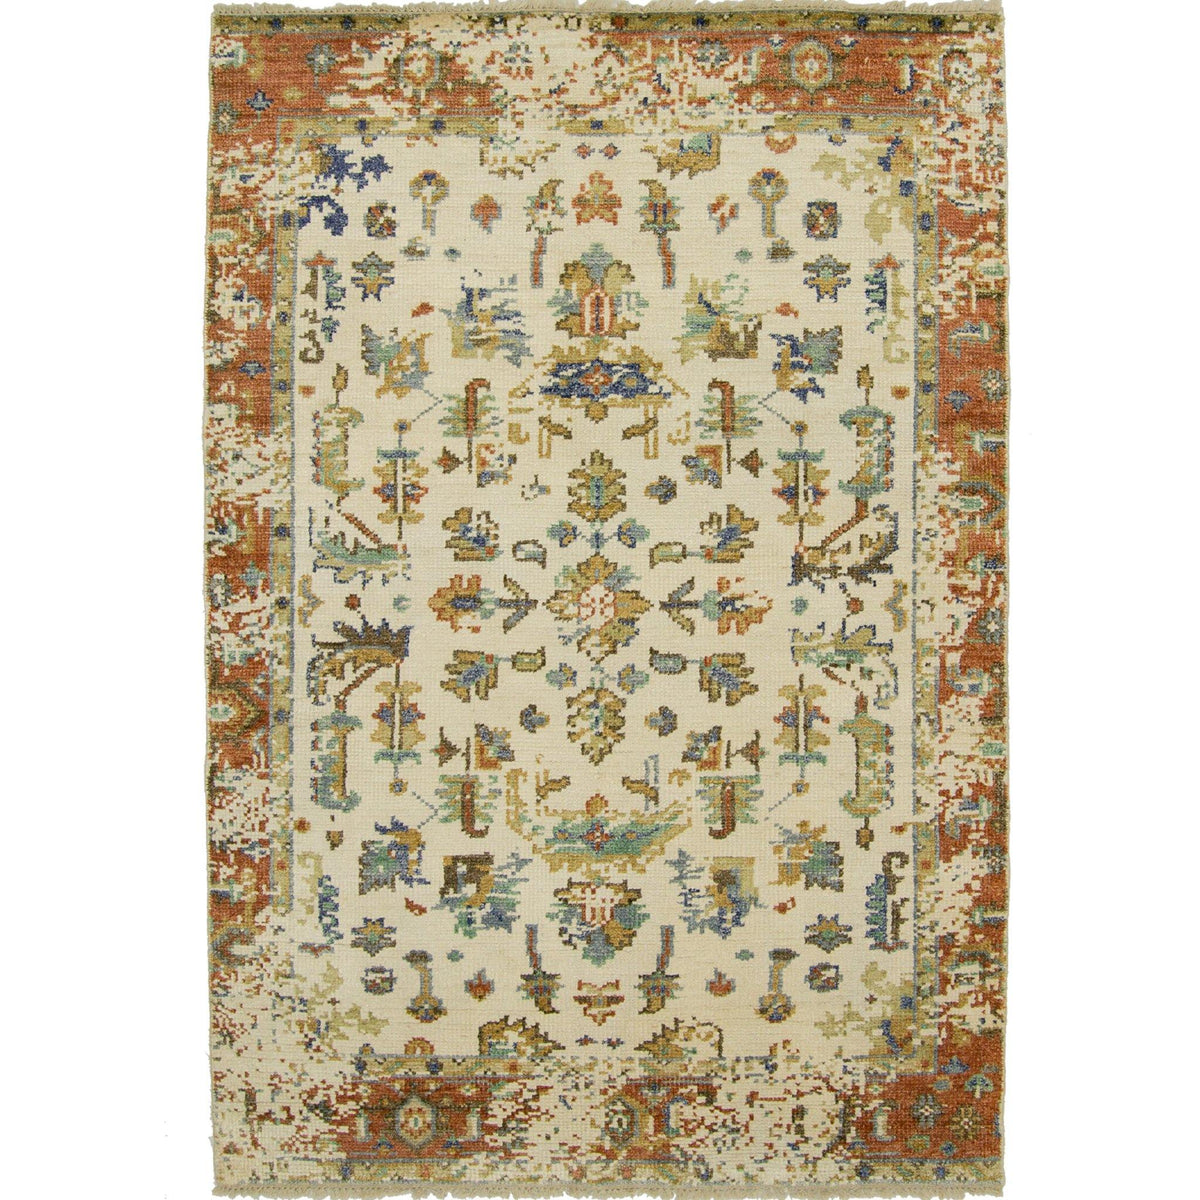 Modern Hand-knotted Wool Heriz Design Rug 154cm x 217cm Persian-Rug | House-of-Haghi | NewMarket | Auckland | NZ | Handmade Persian Rugs | Hand Knotted Persian Rugs